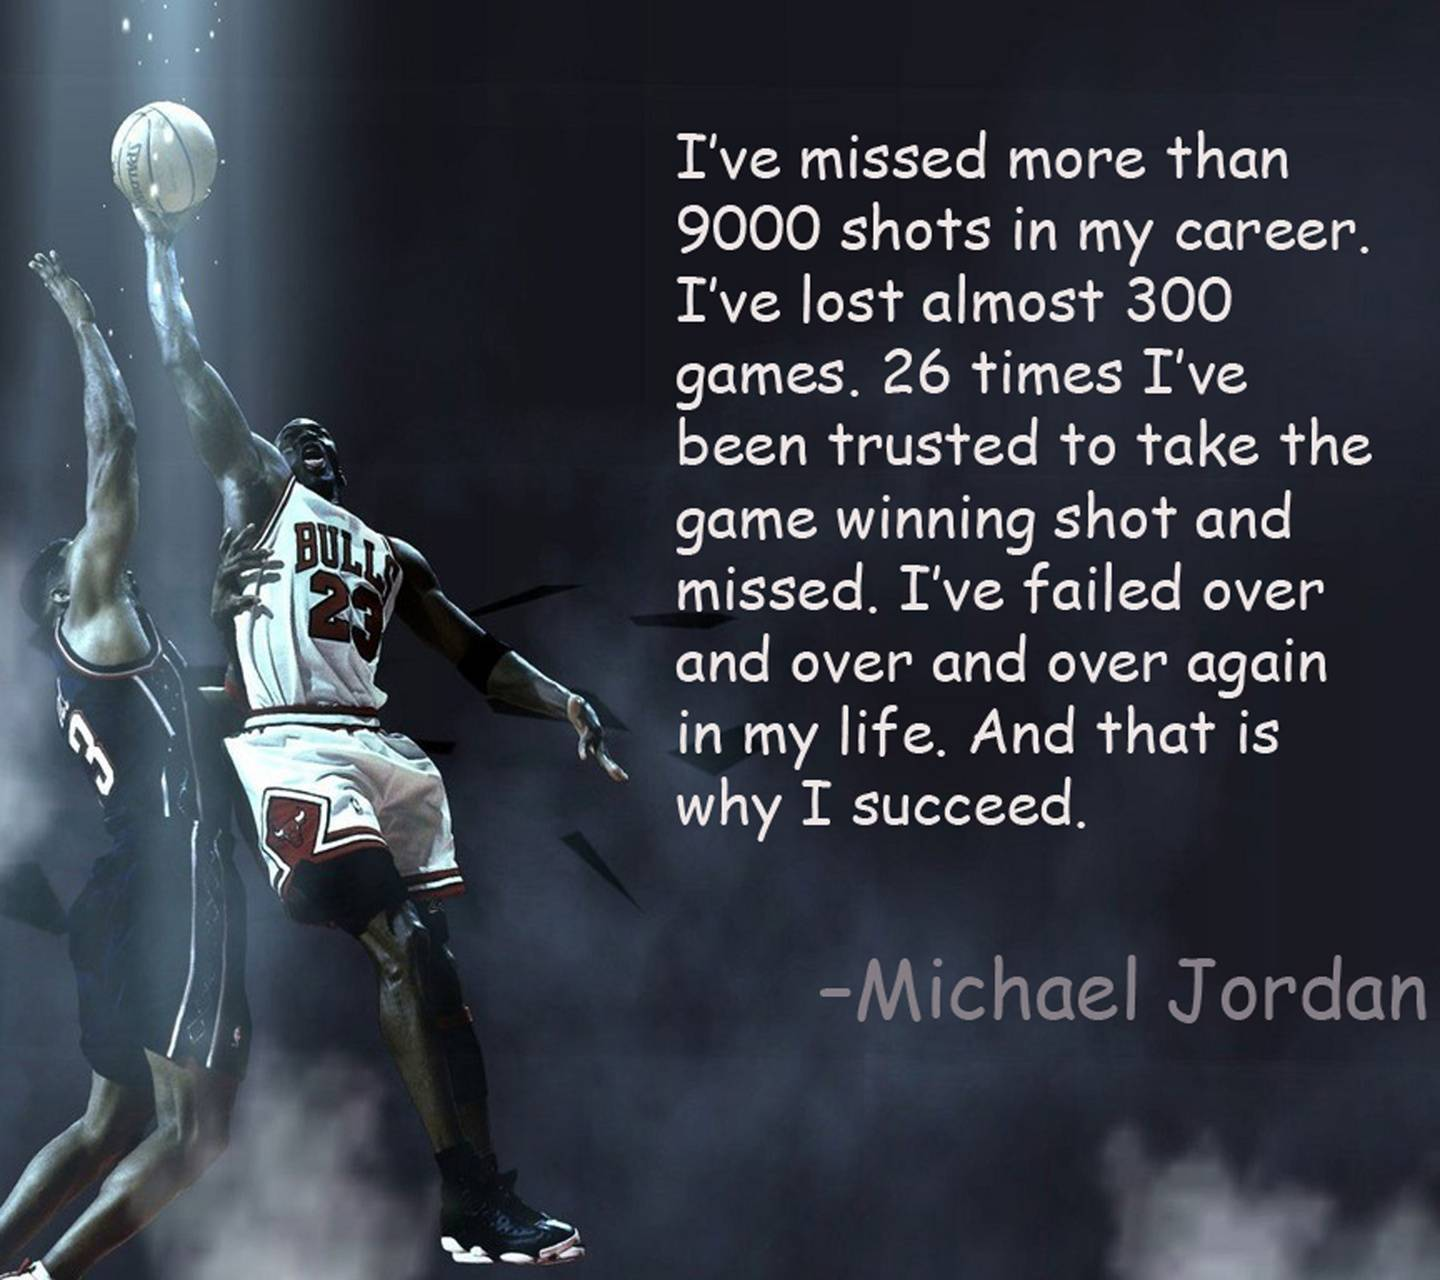 Michael Jordan Quote wallpaper by Almost_Famous_ - a8 - Free ...